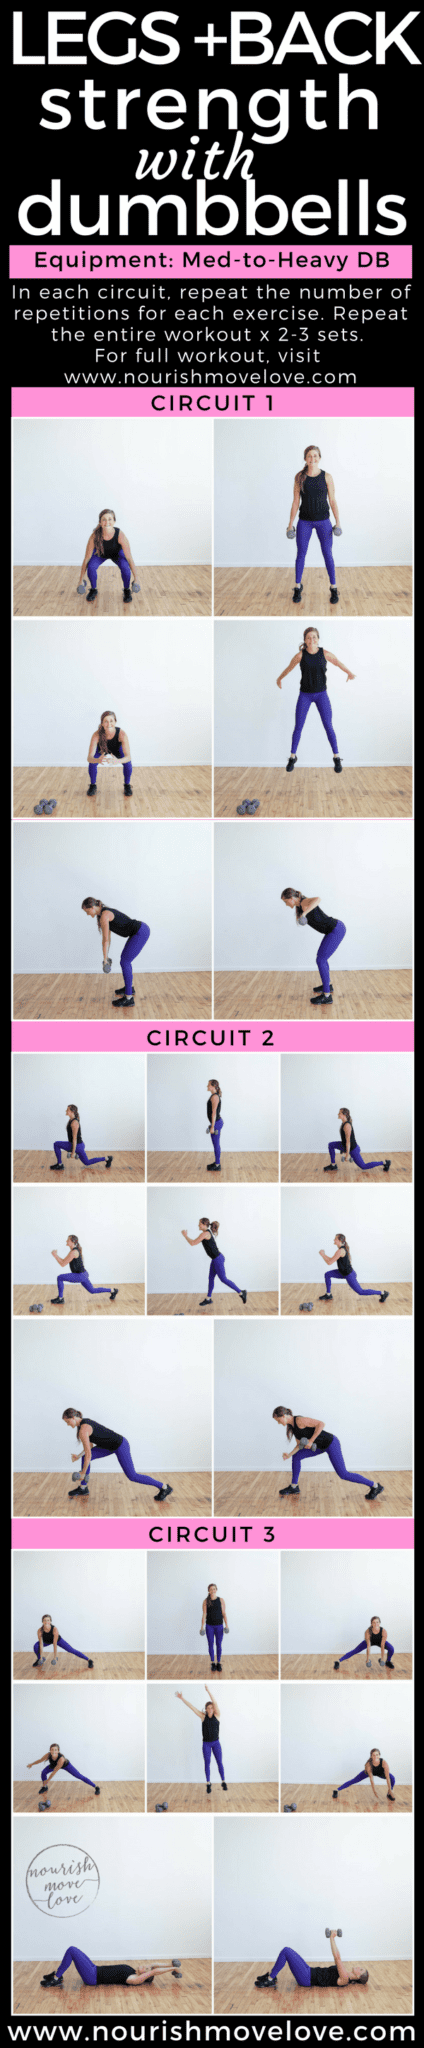 Legs + Back Strength Workout with Cardio | www.nourishmovelove.com